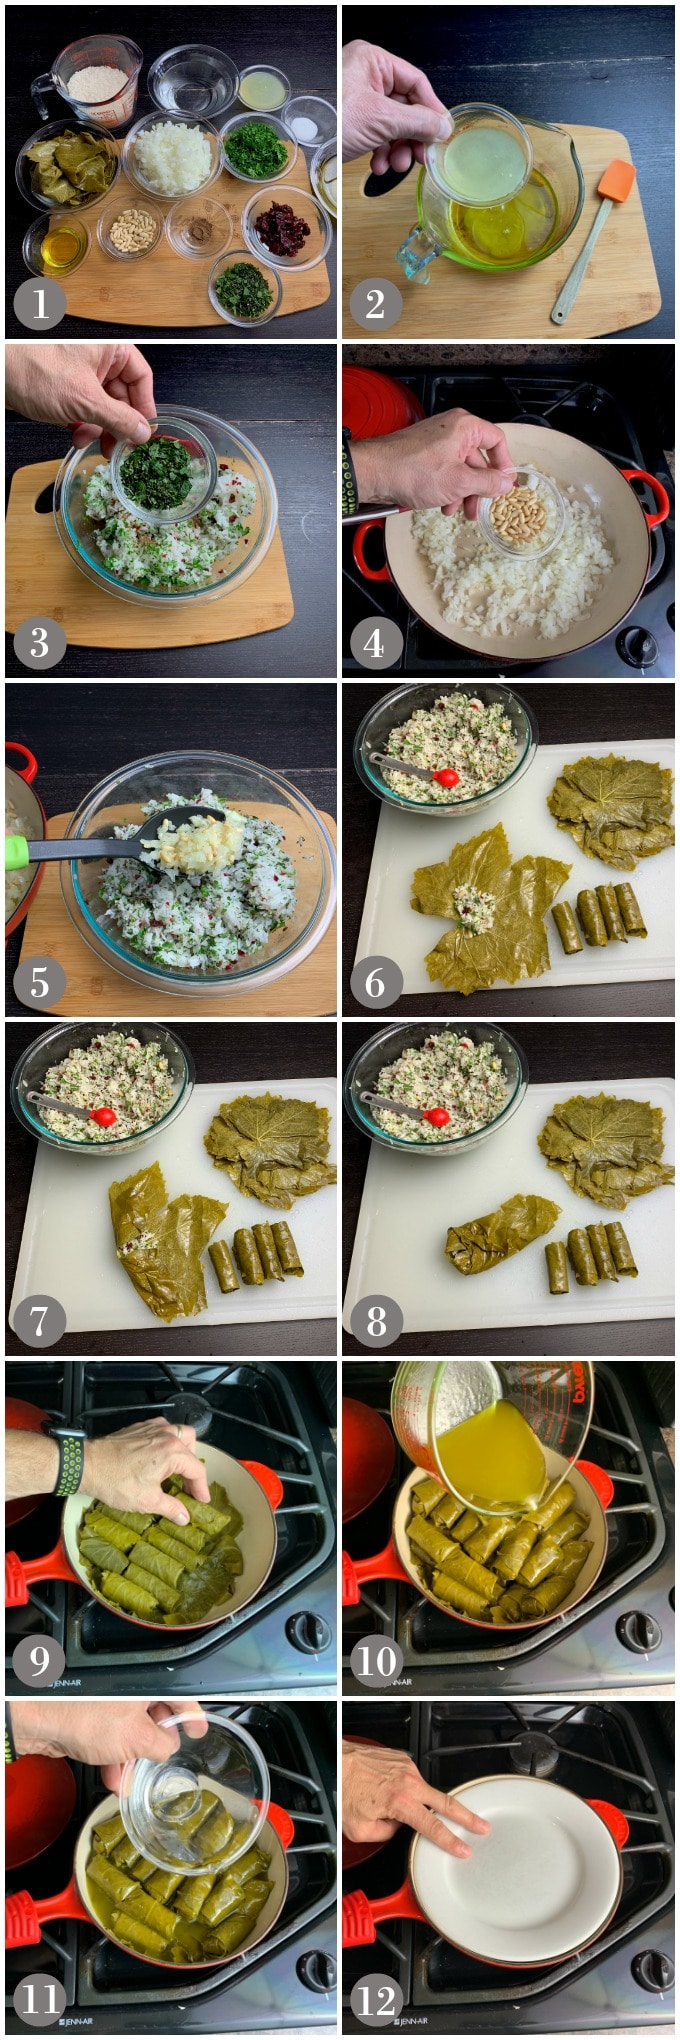 A collage of photos showing the steps to make dolmas in a pan with rice filling.